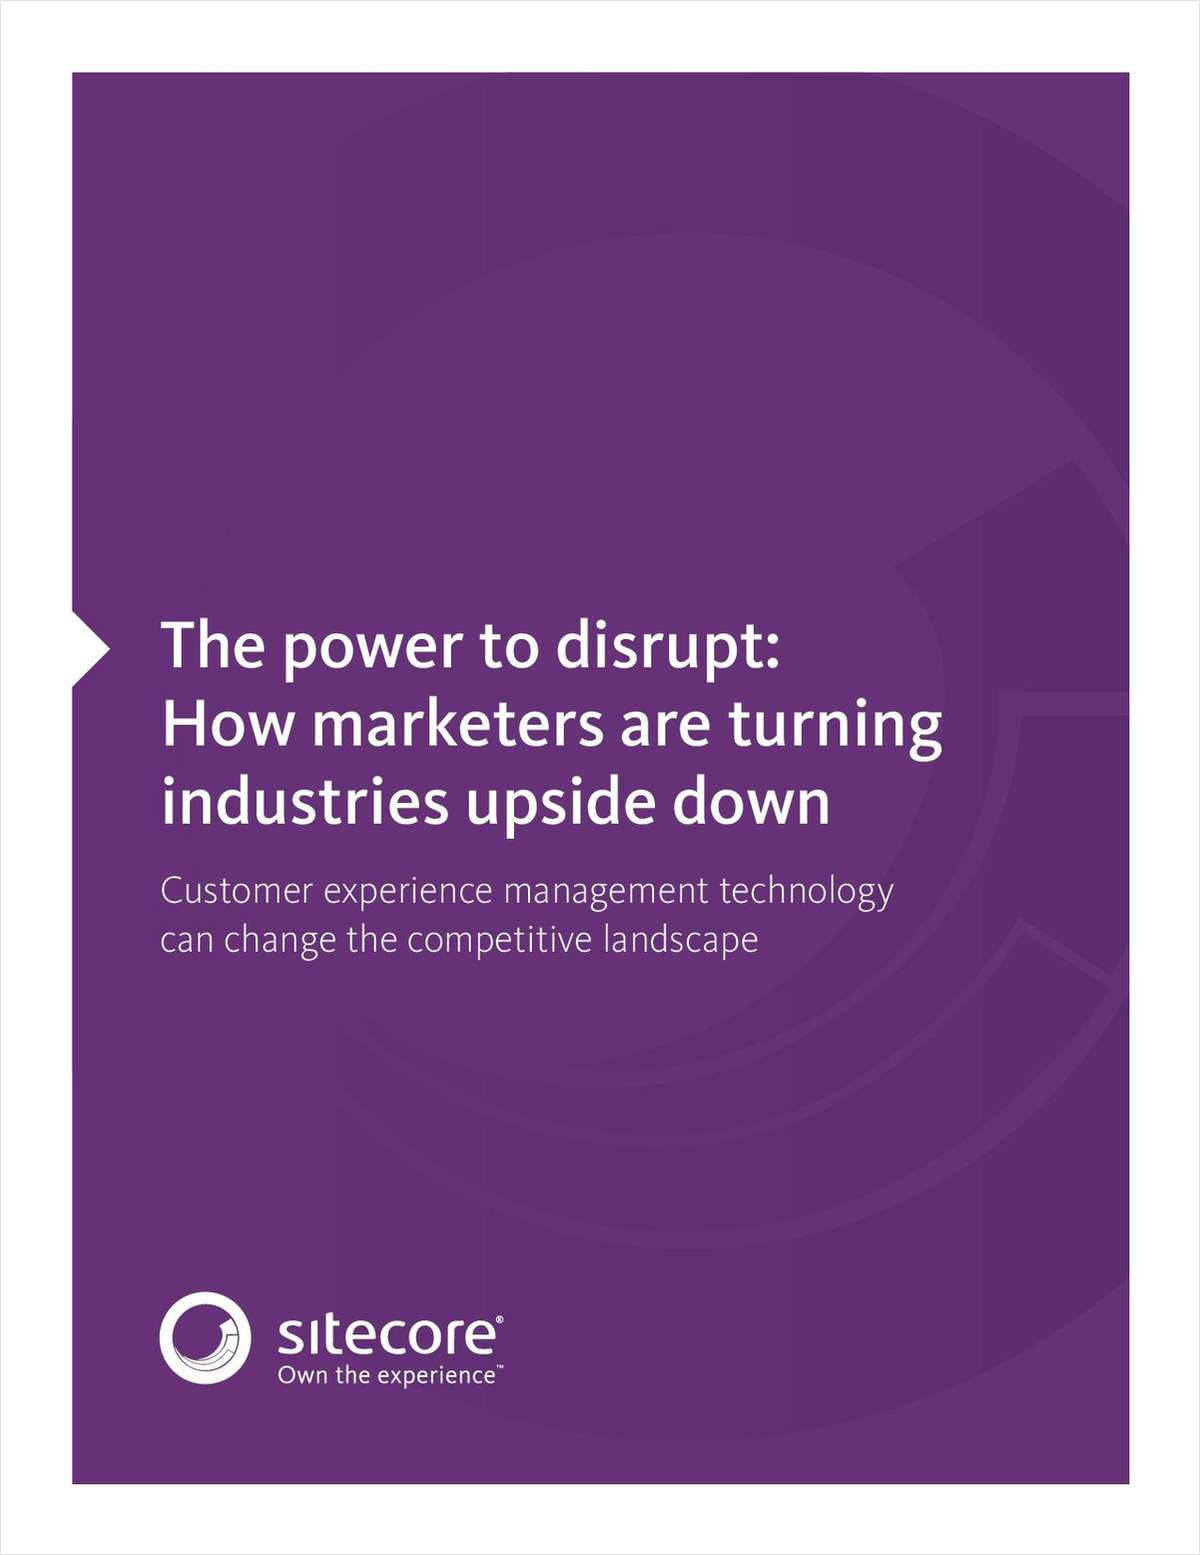 The Power to Disrupt: How Marketers are Turning Industries Upside Down